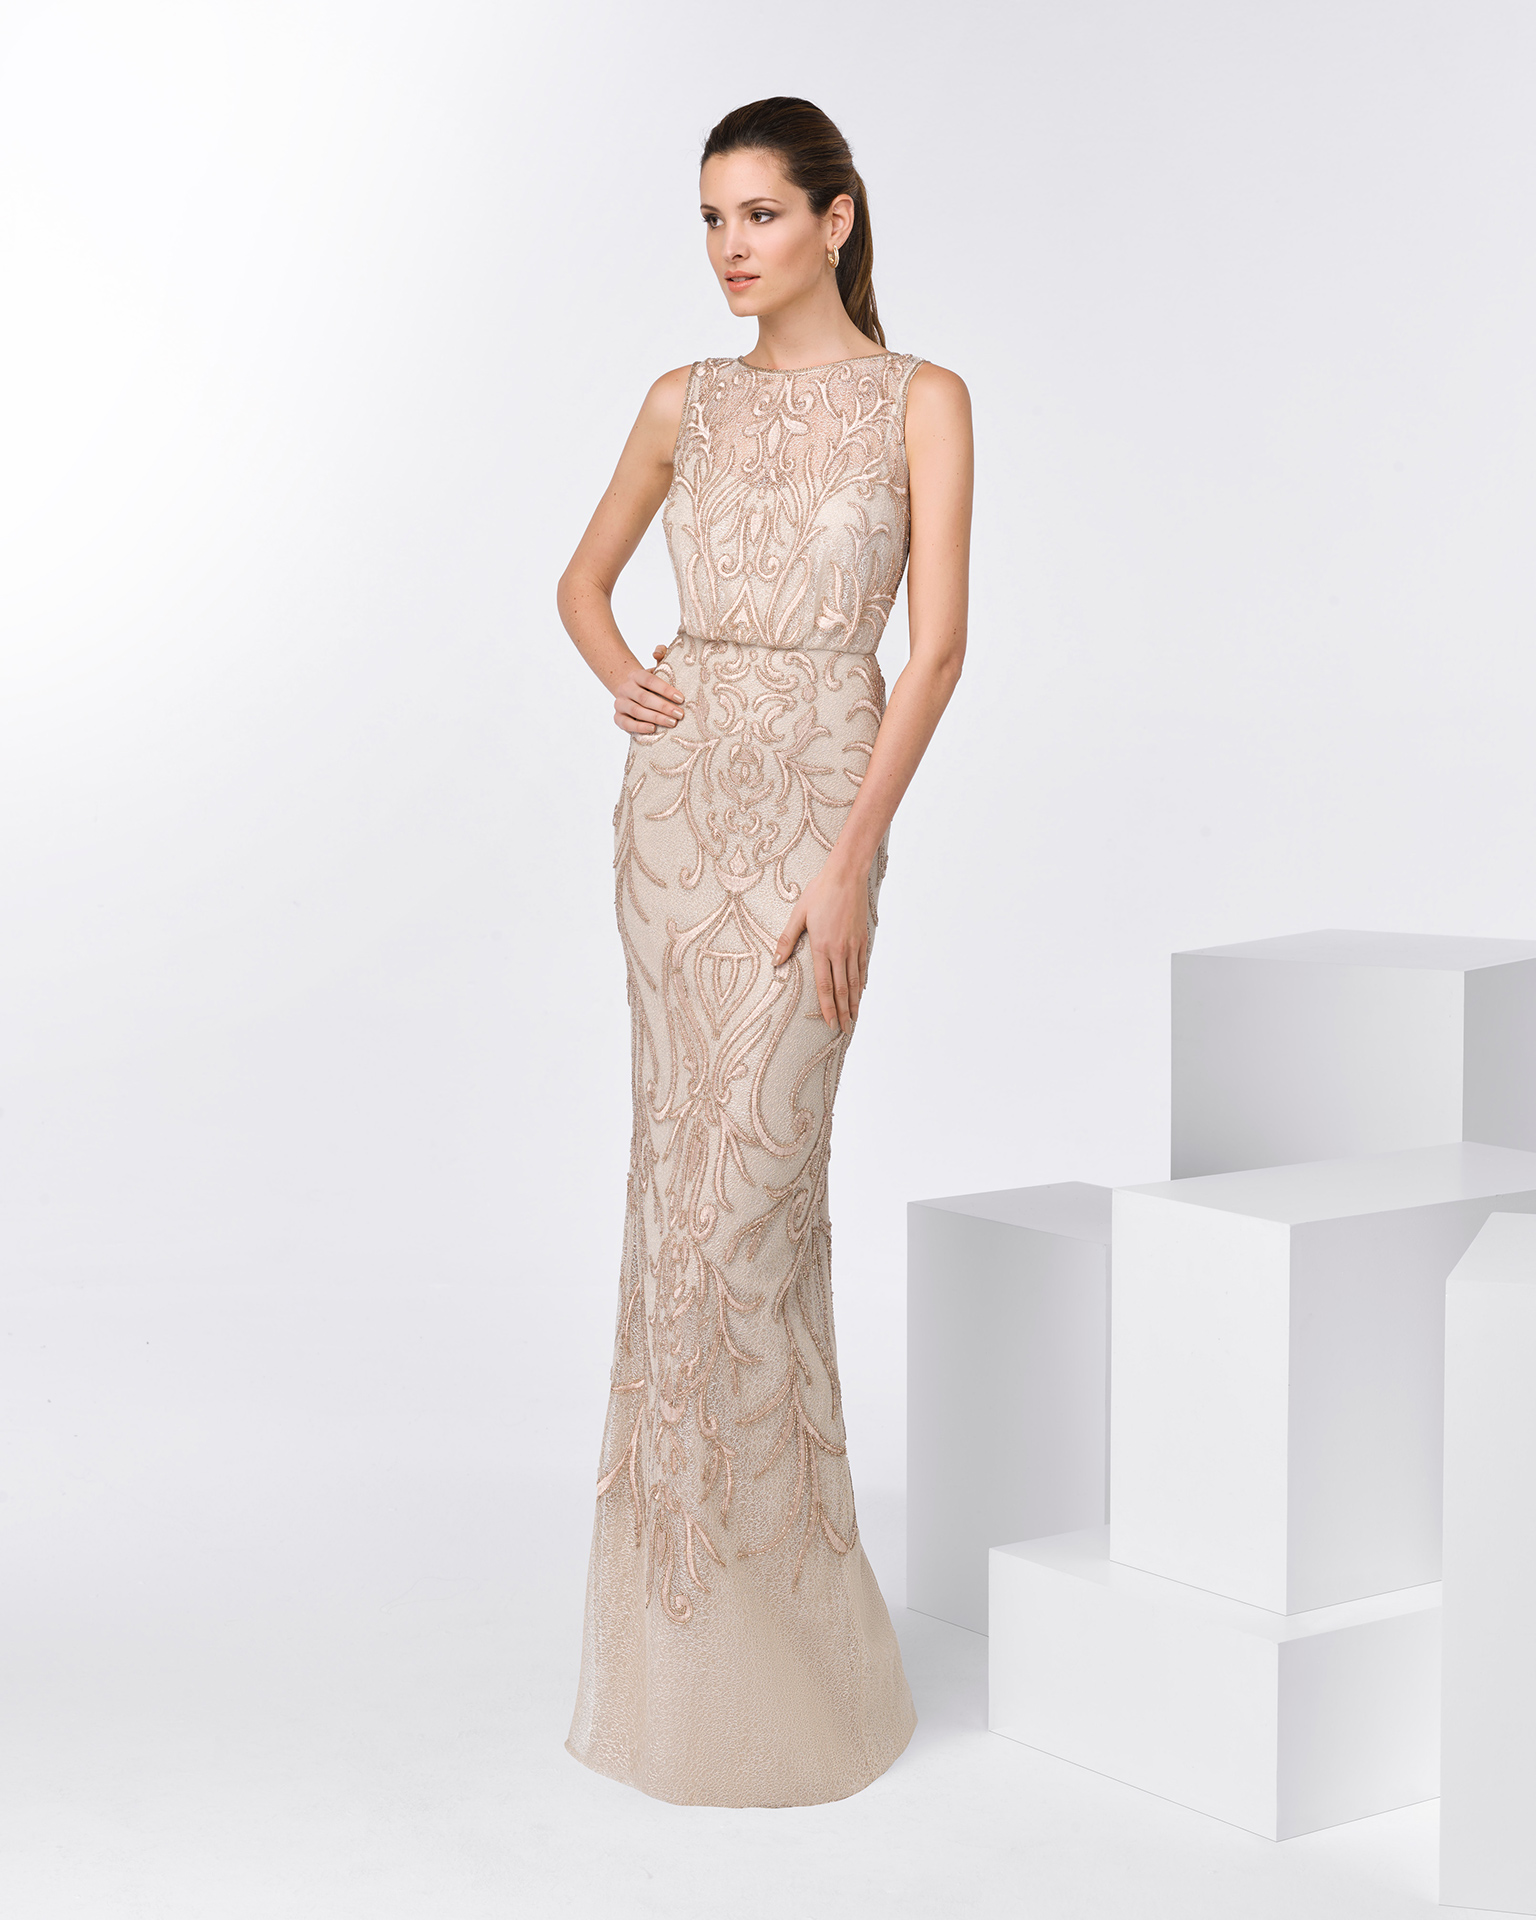 84ddc73a4 Long sleeveless beaded cocktail dress. Available in pink and beige. 2018 FIESTA  AIRE BARCELONA ...